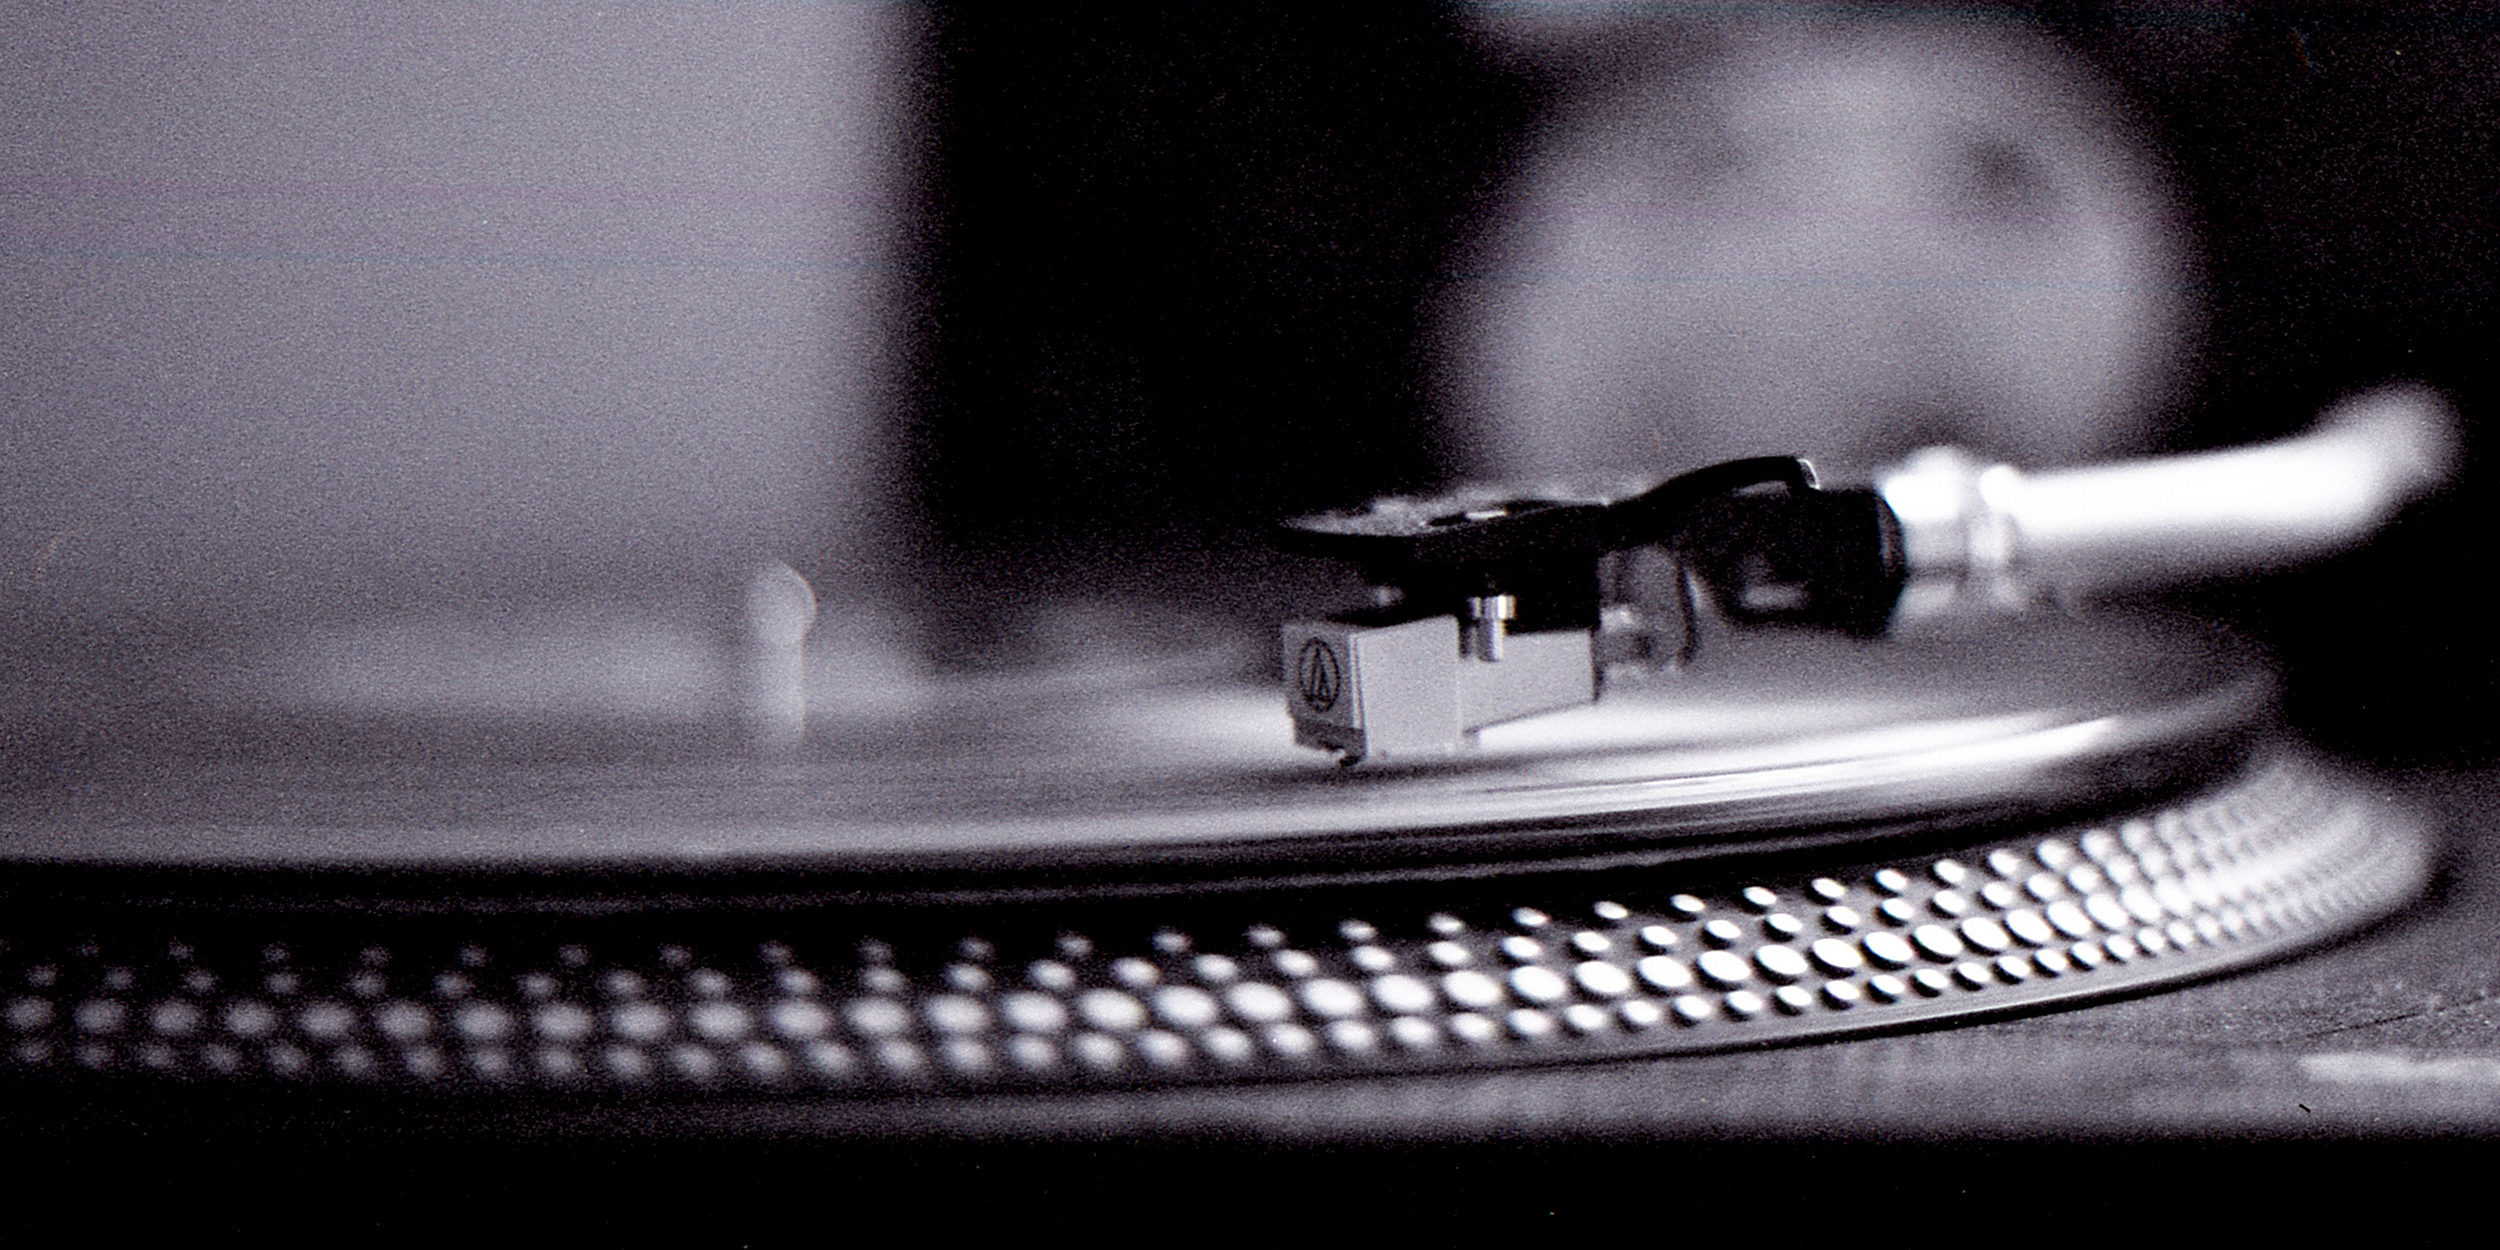 close up side view of a record player, grainy image, black and white.